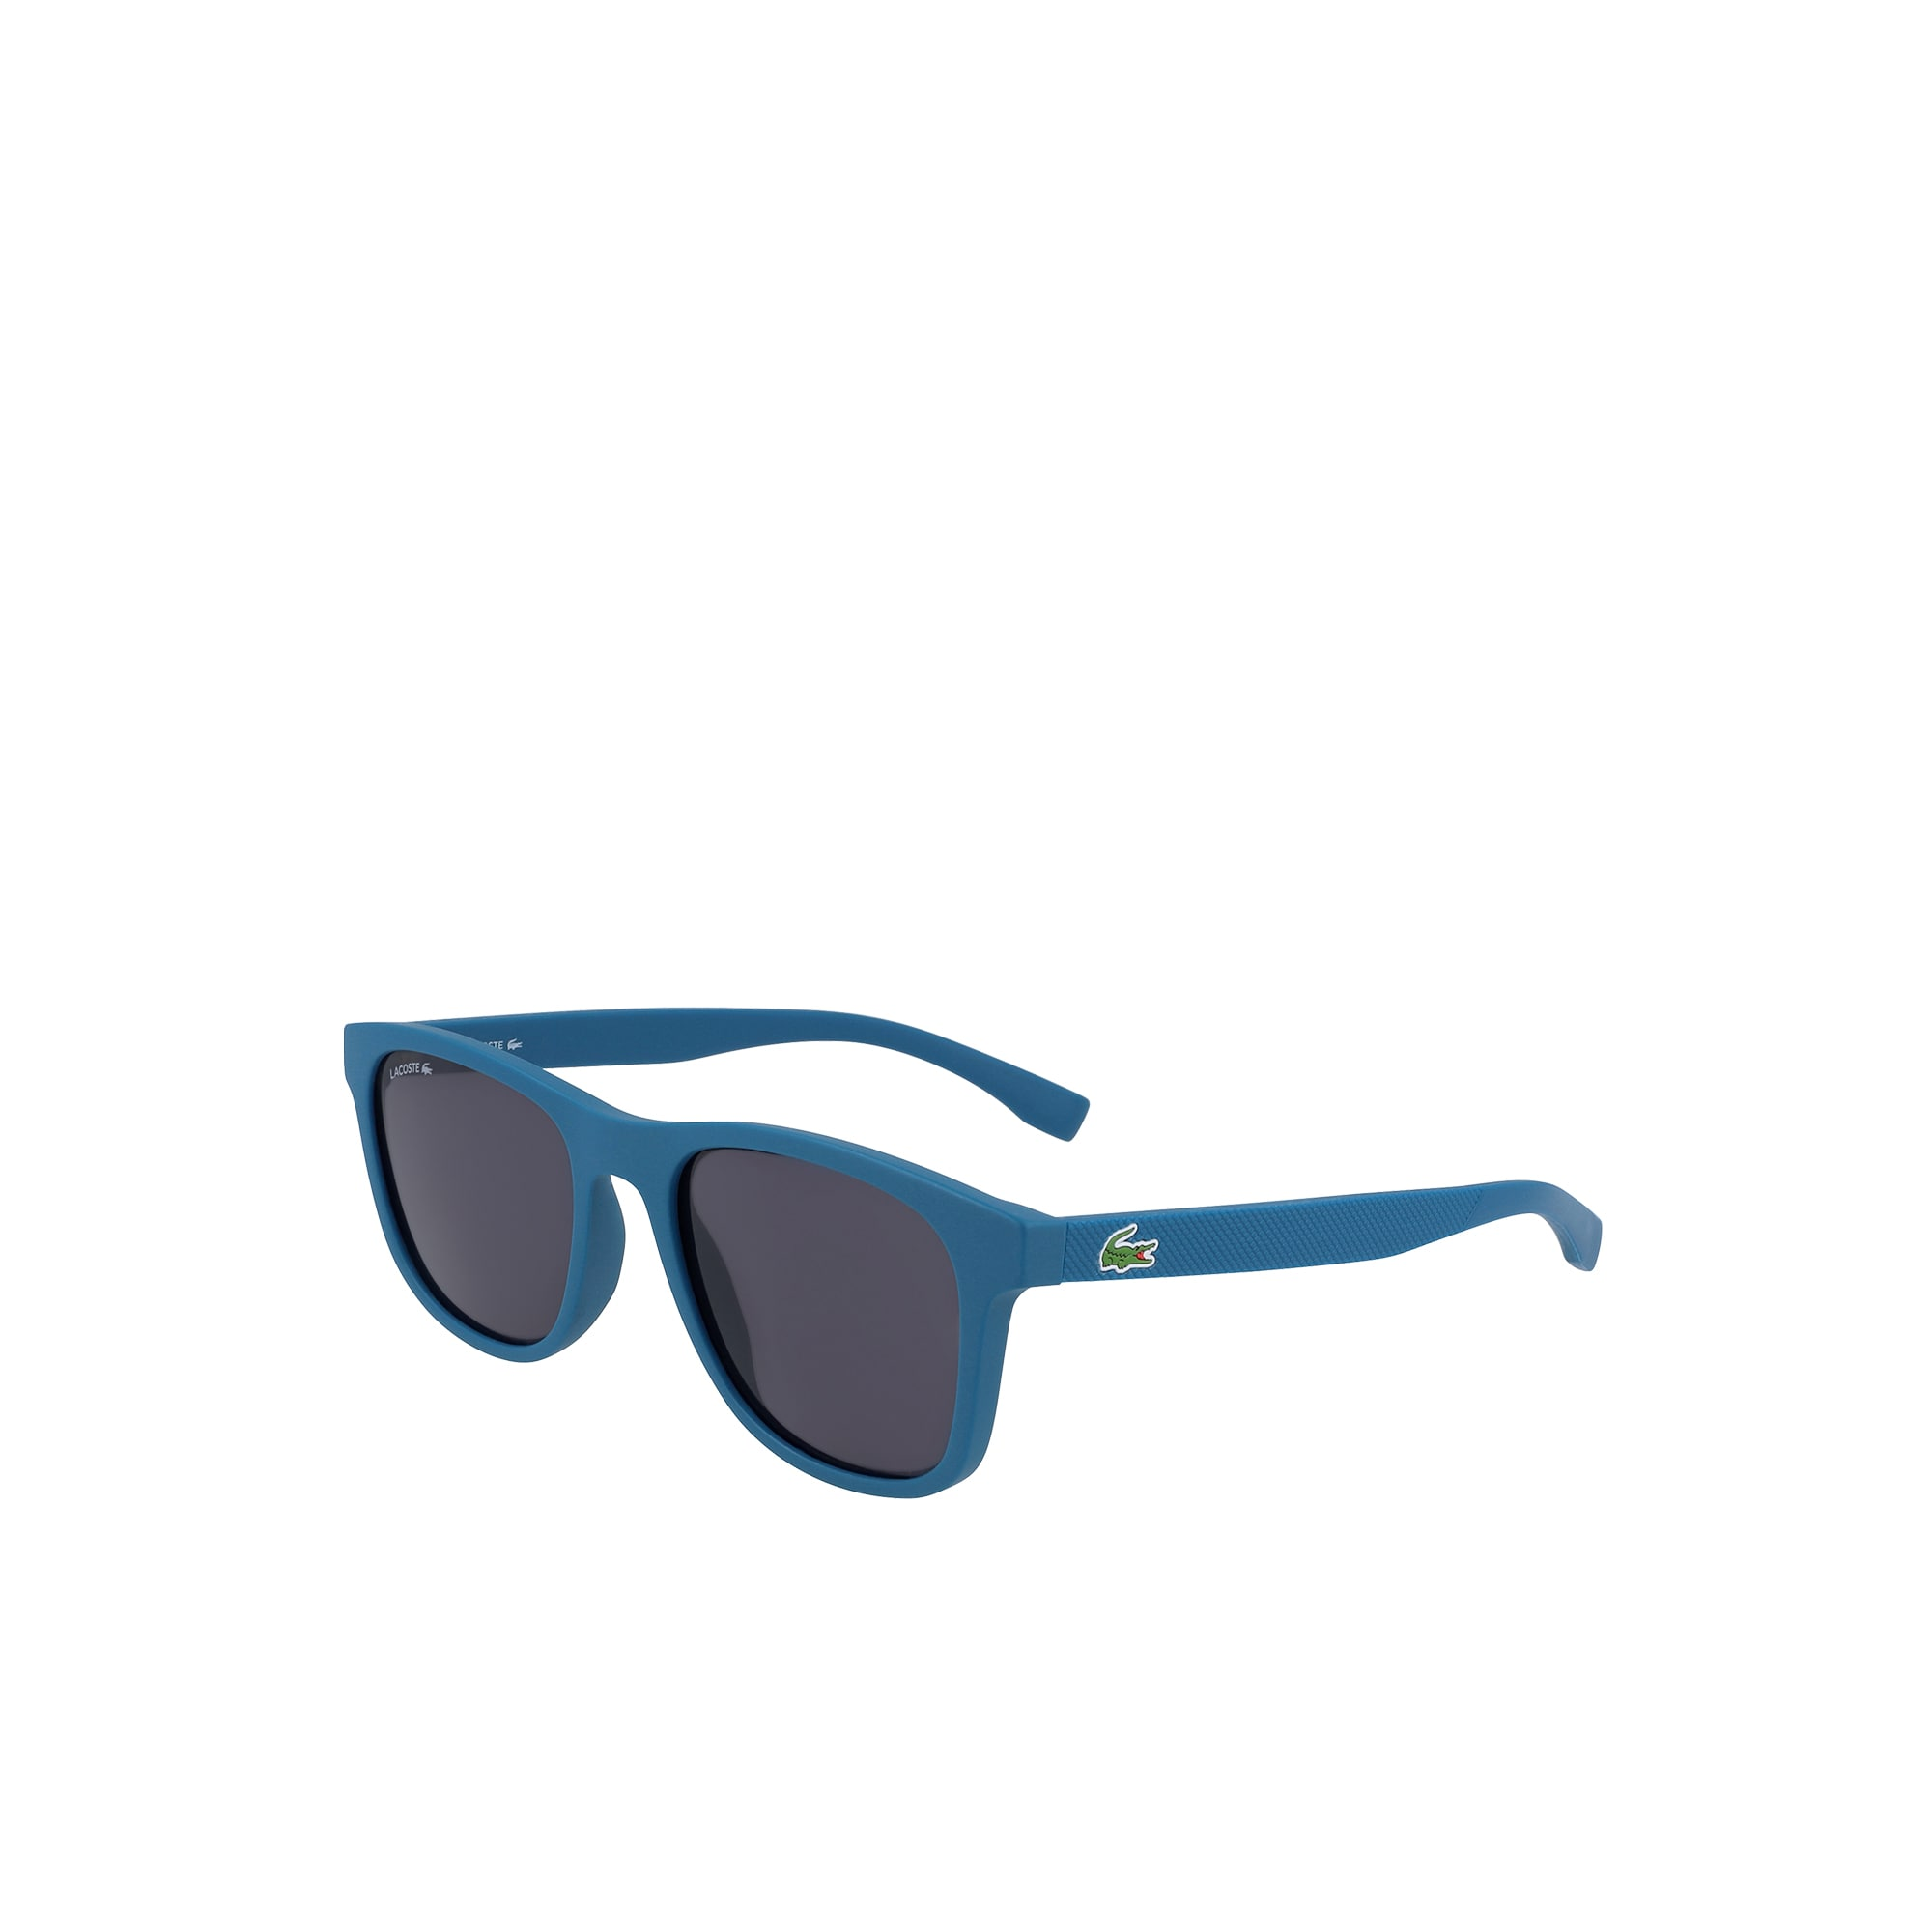 SunglassesAccessories Lacoste Men's Men's SunglassesAccessories Lacoste Men's Men's SunglassesAccessories Lacoste Lacoste Men's SunglassesAccessories SunglassesAccessories CtrdhQsx